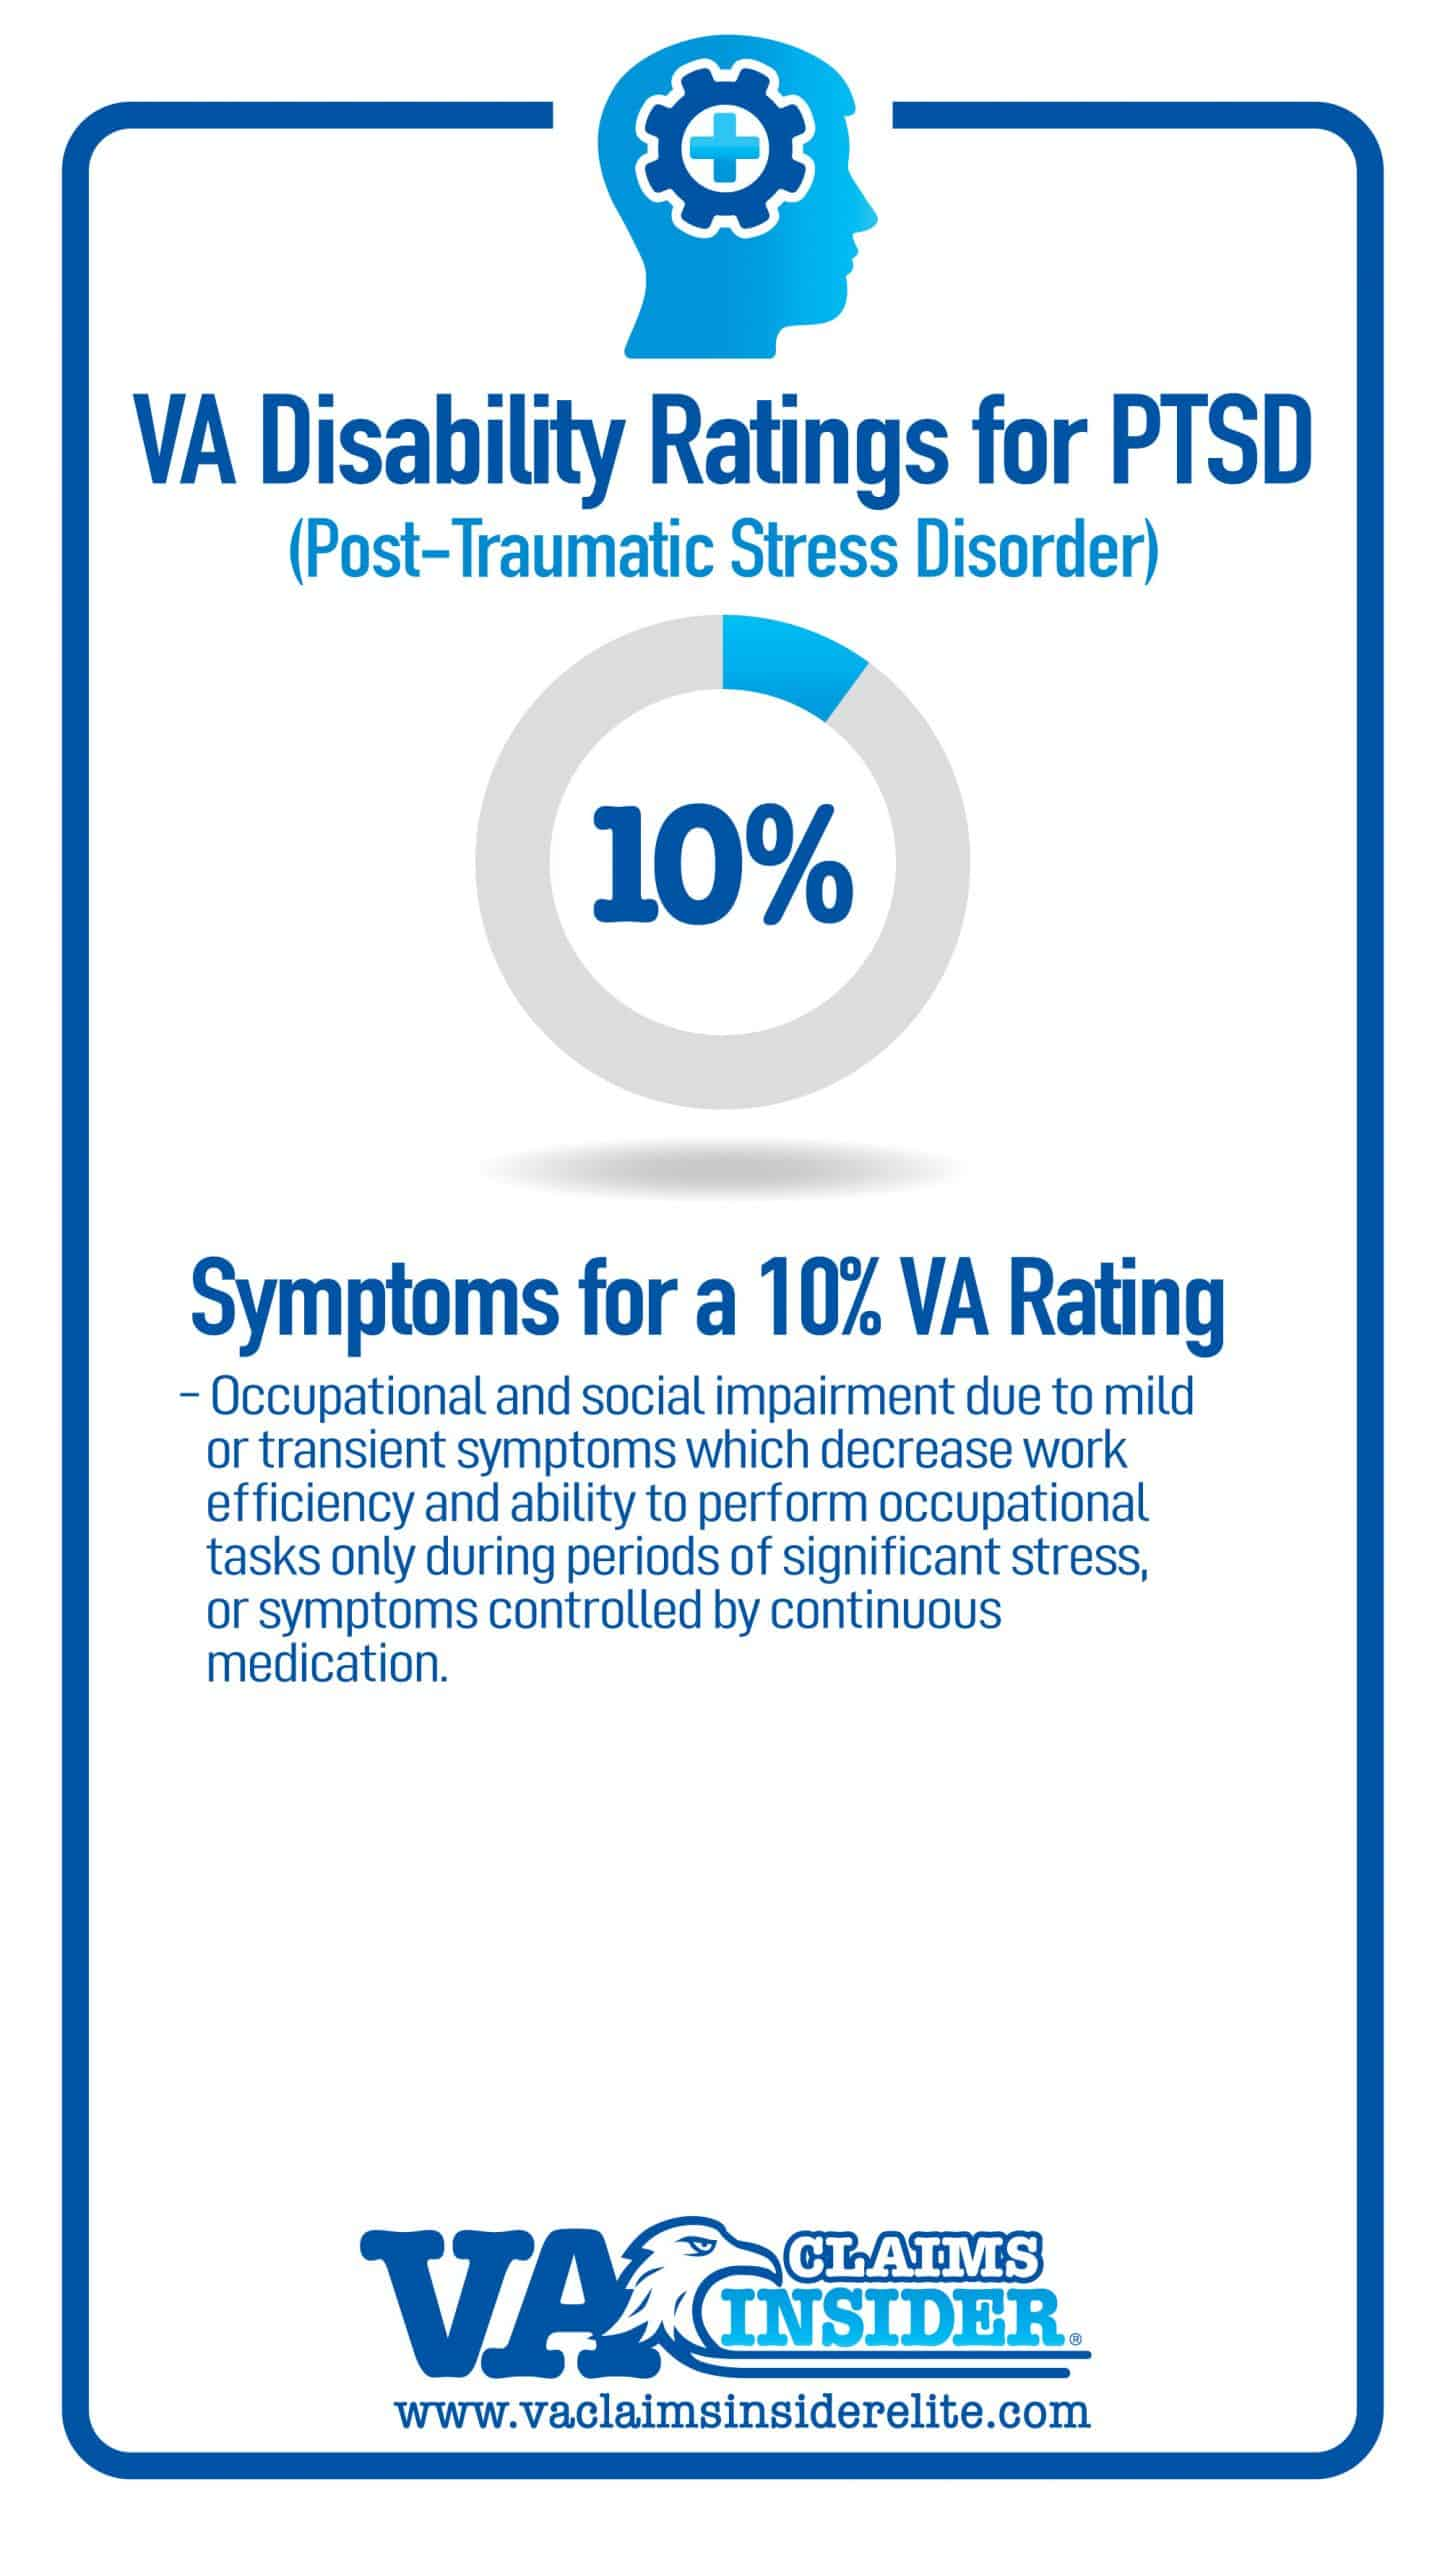 Symptoms of 10 Percent VA Rating for PTSD